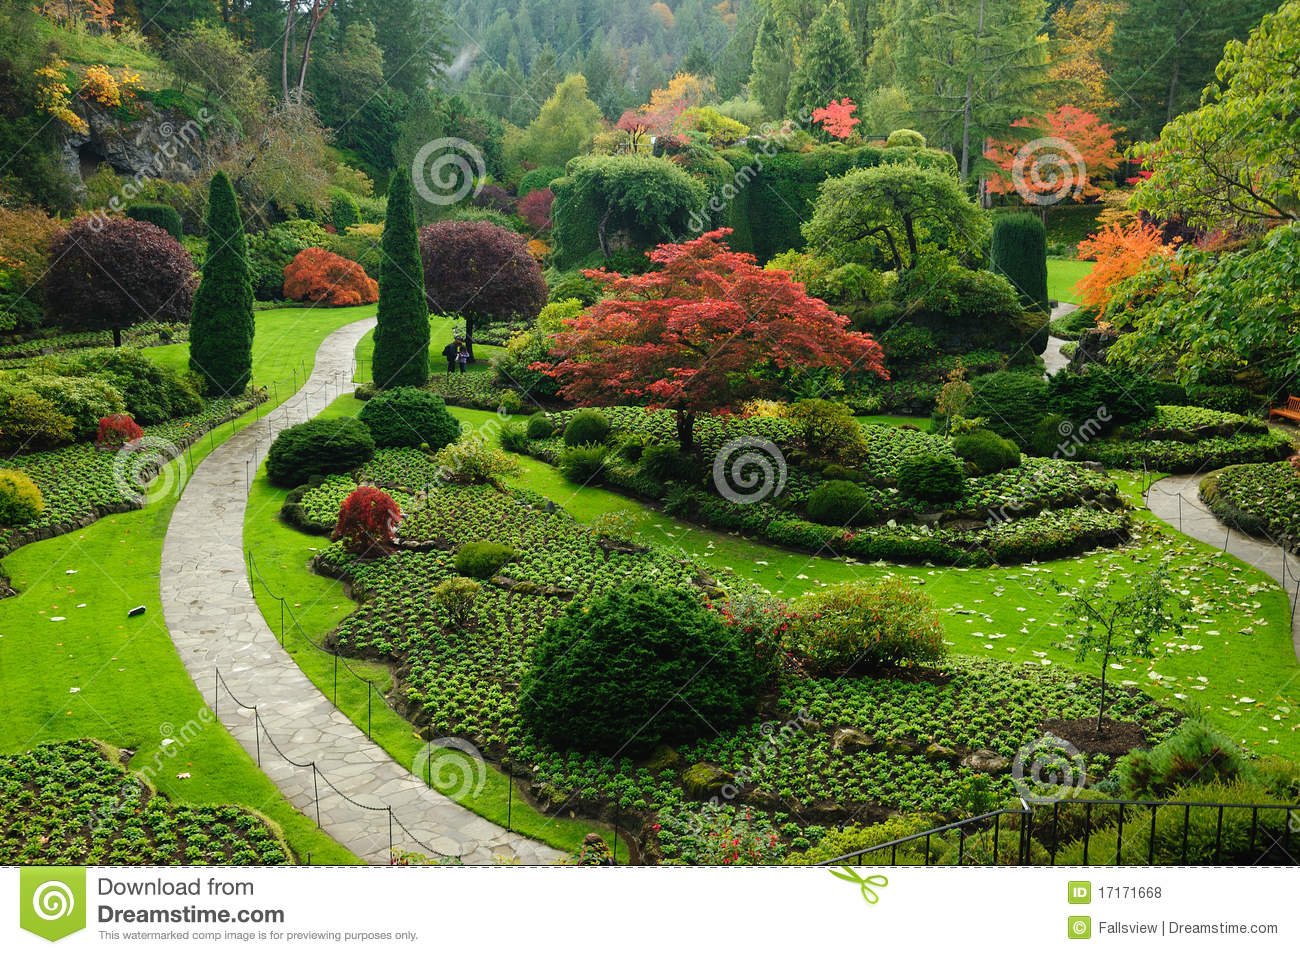 Genial Garden Landscaping. Royalty Free Stock Photo